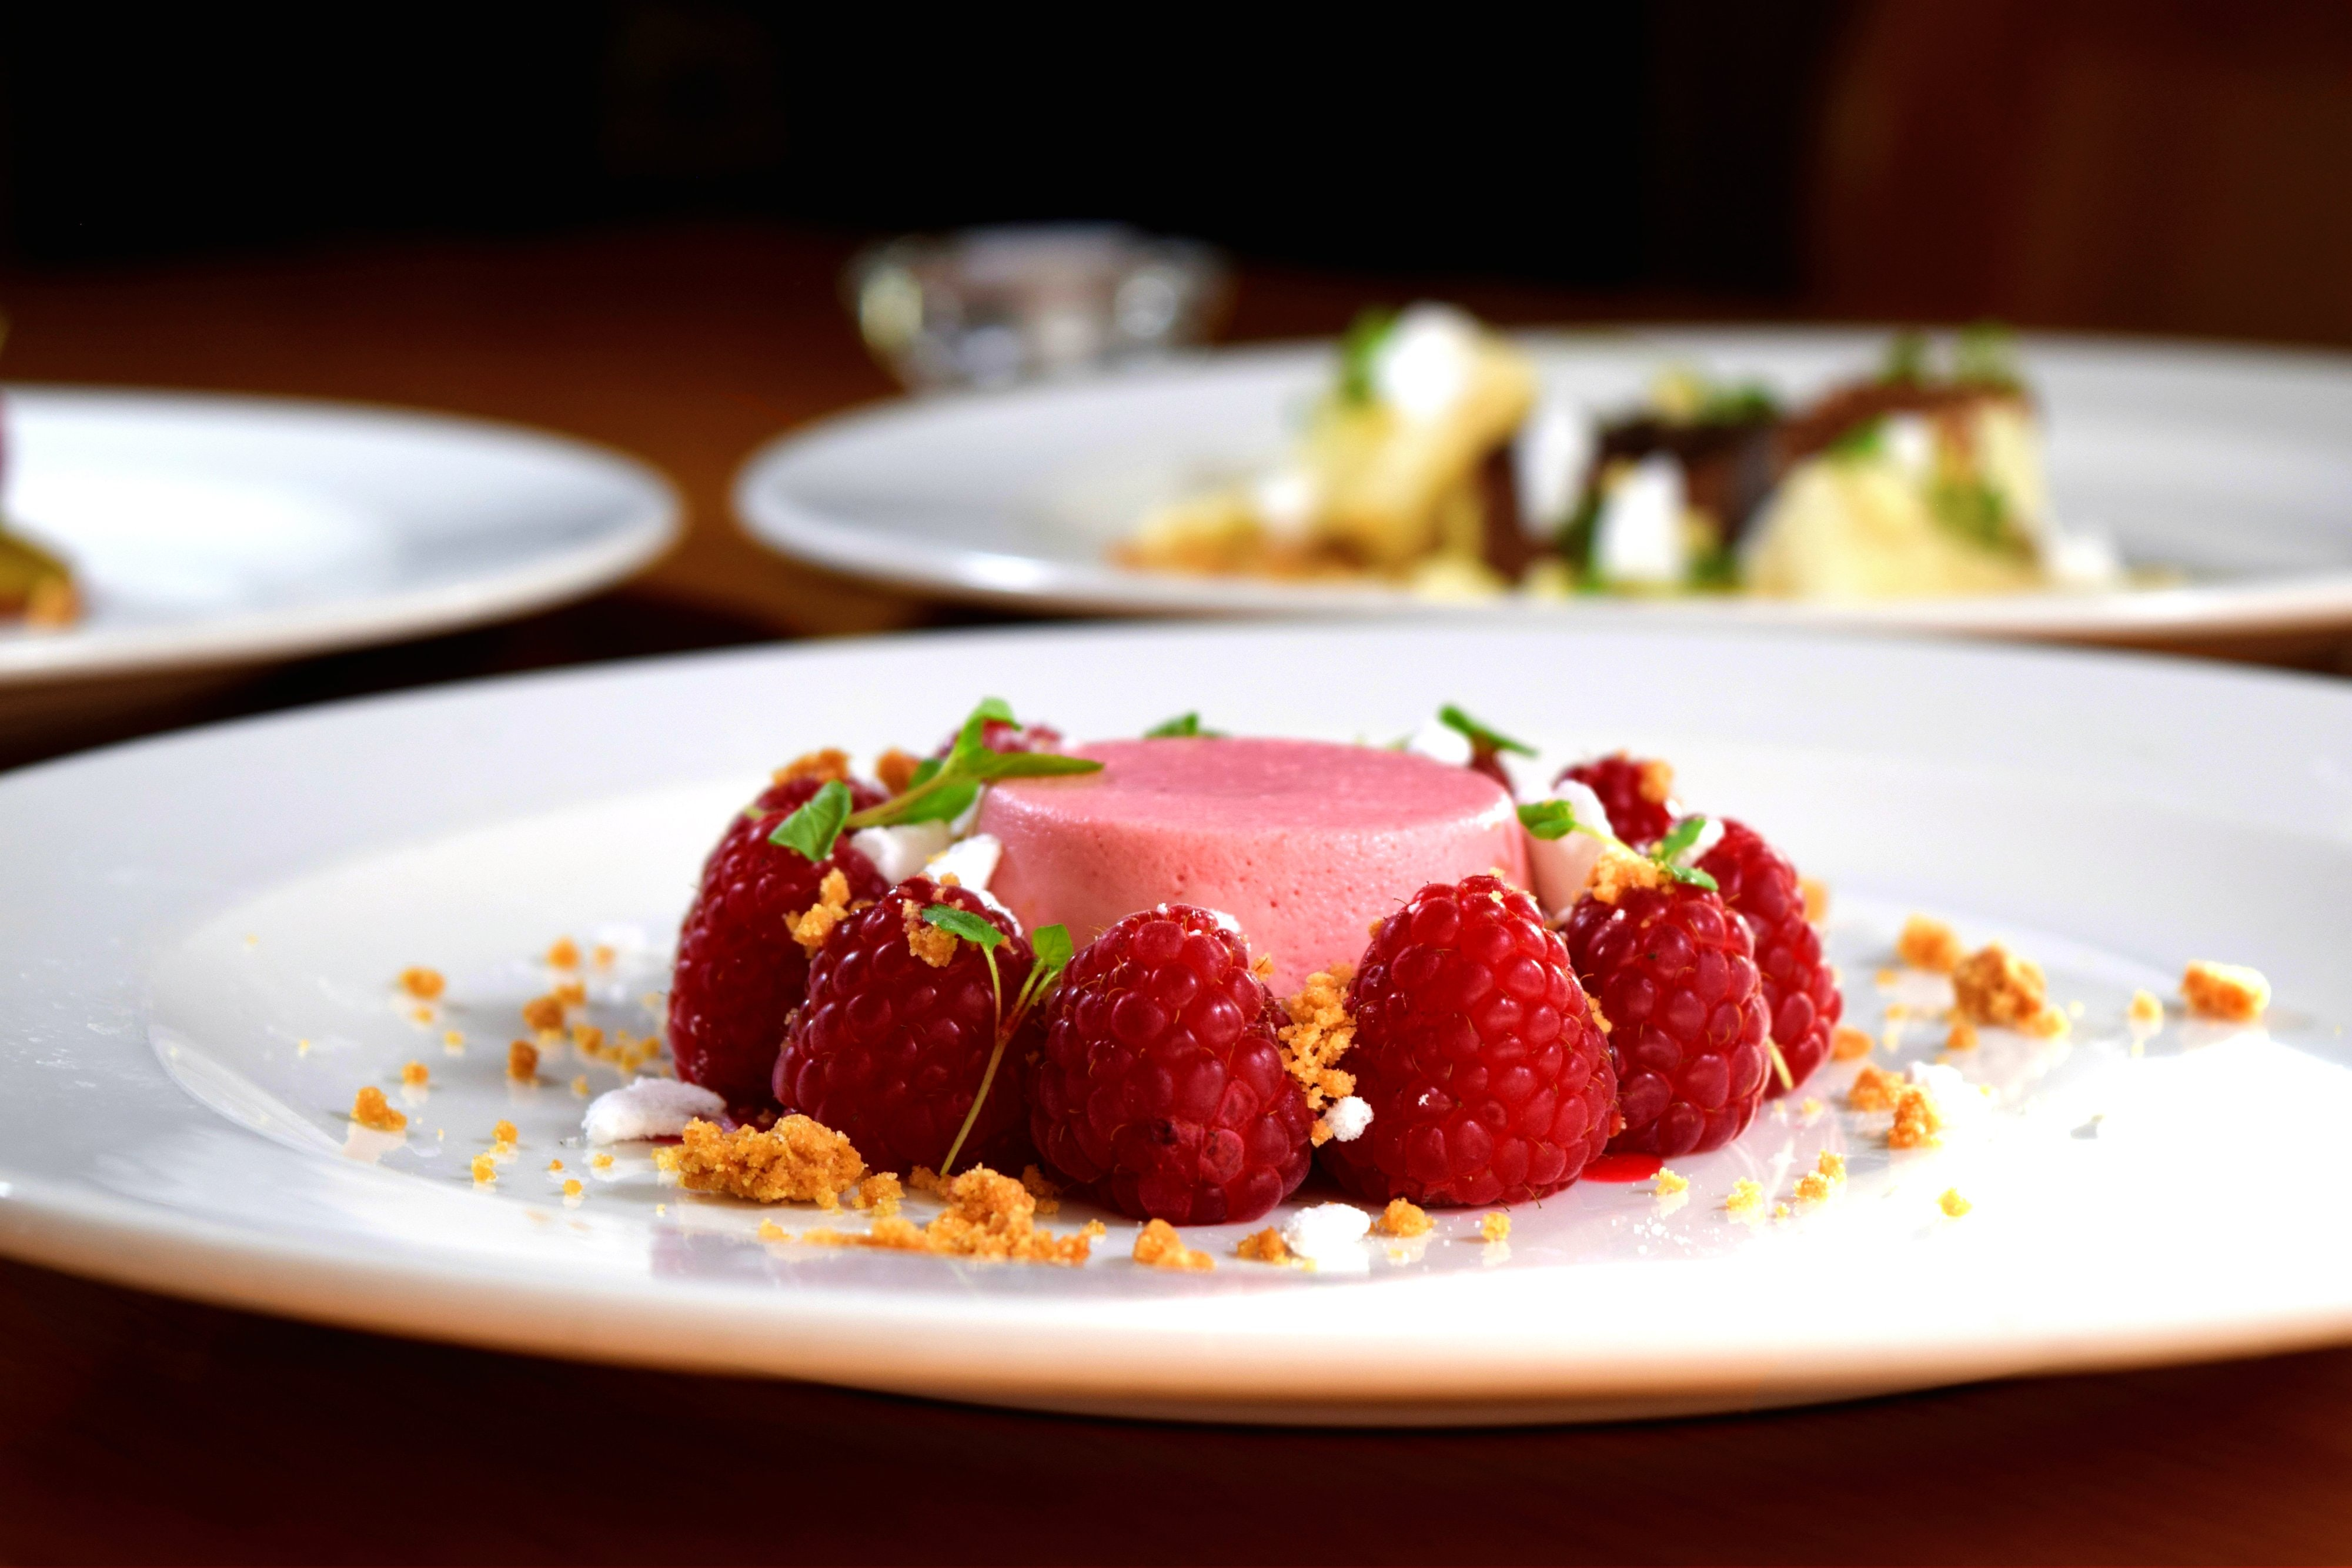 desert with red berries on plate